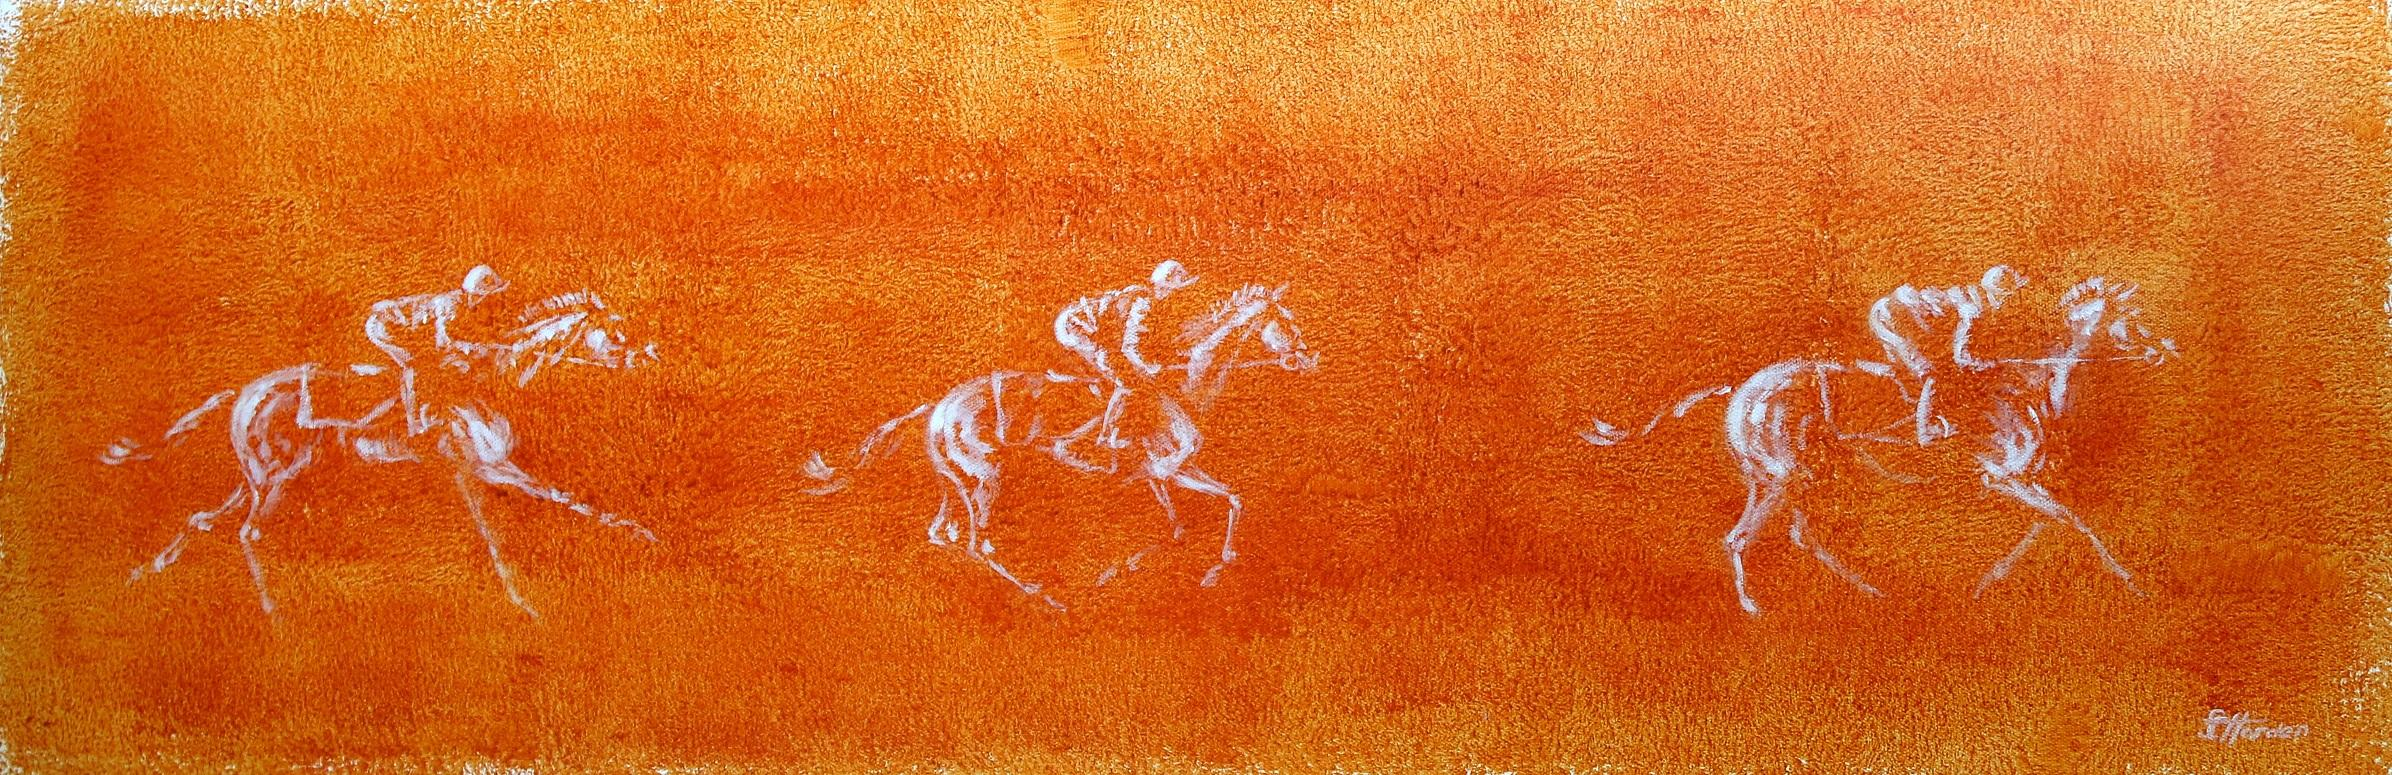 Catch me if you can... Original Orange Painting of Horse Riders